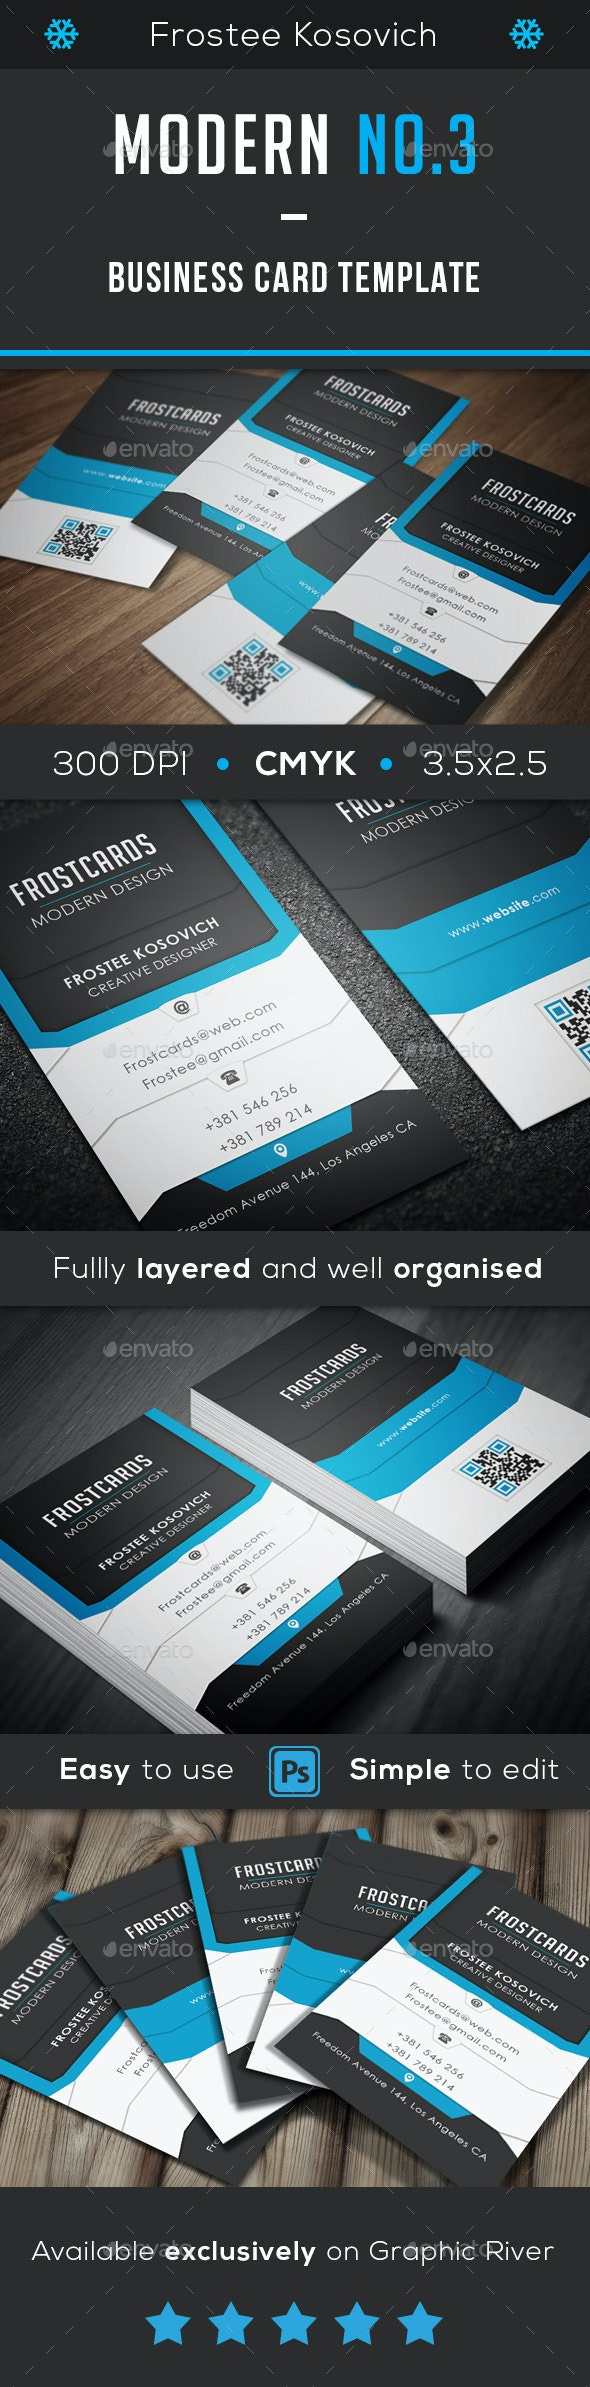 Modern Business Card Template No. 3 - Creative Business Cards